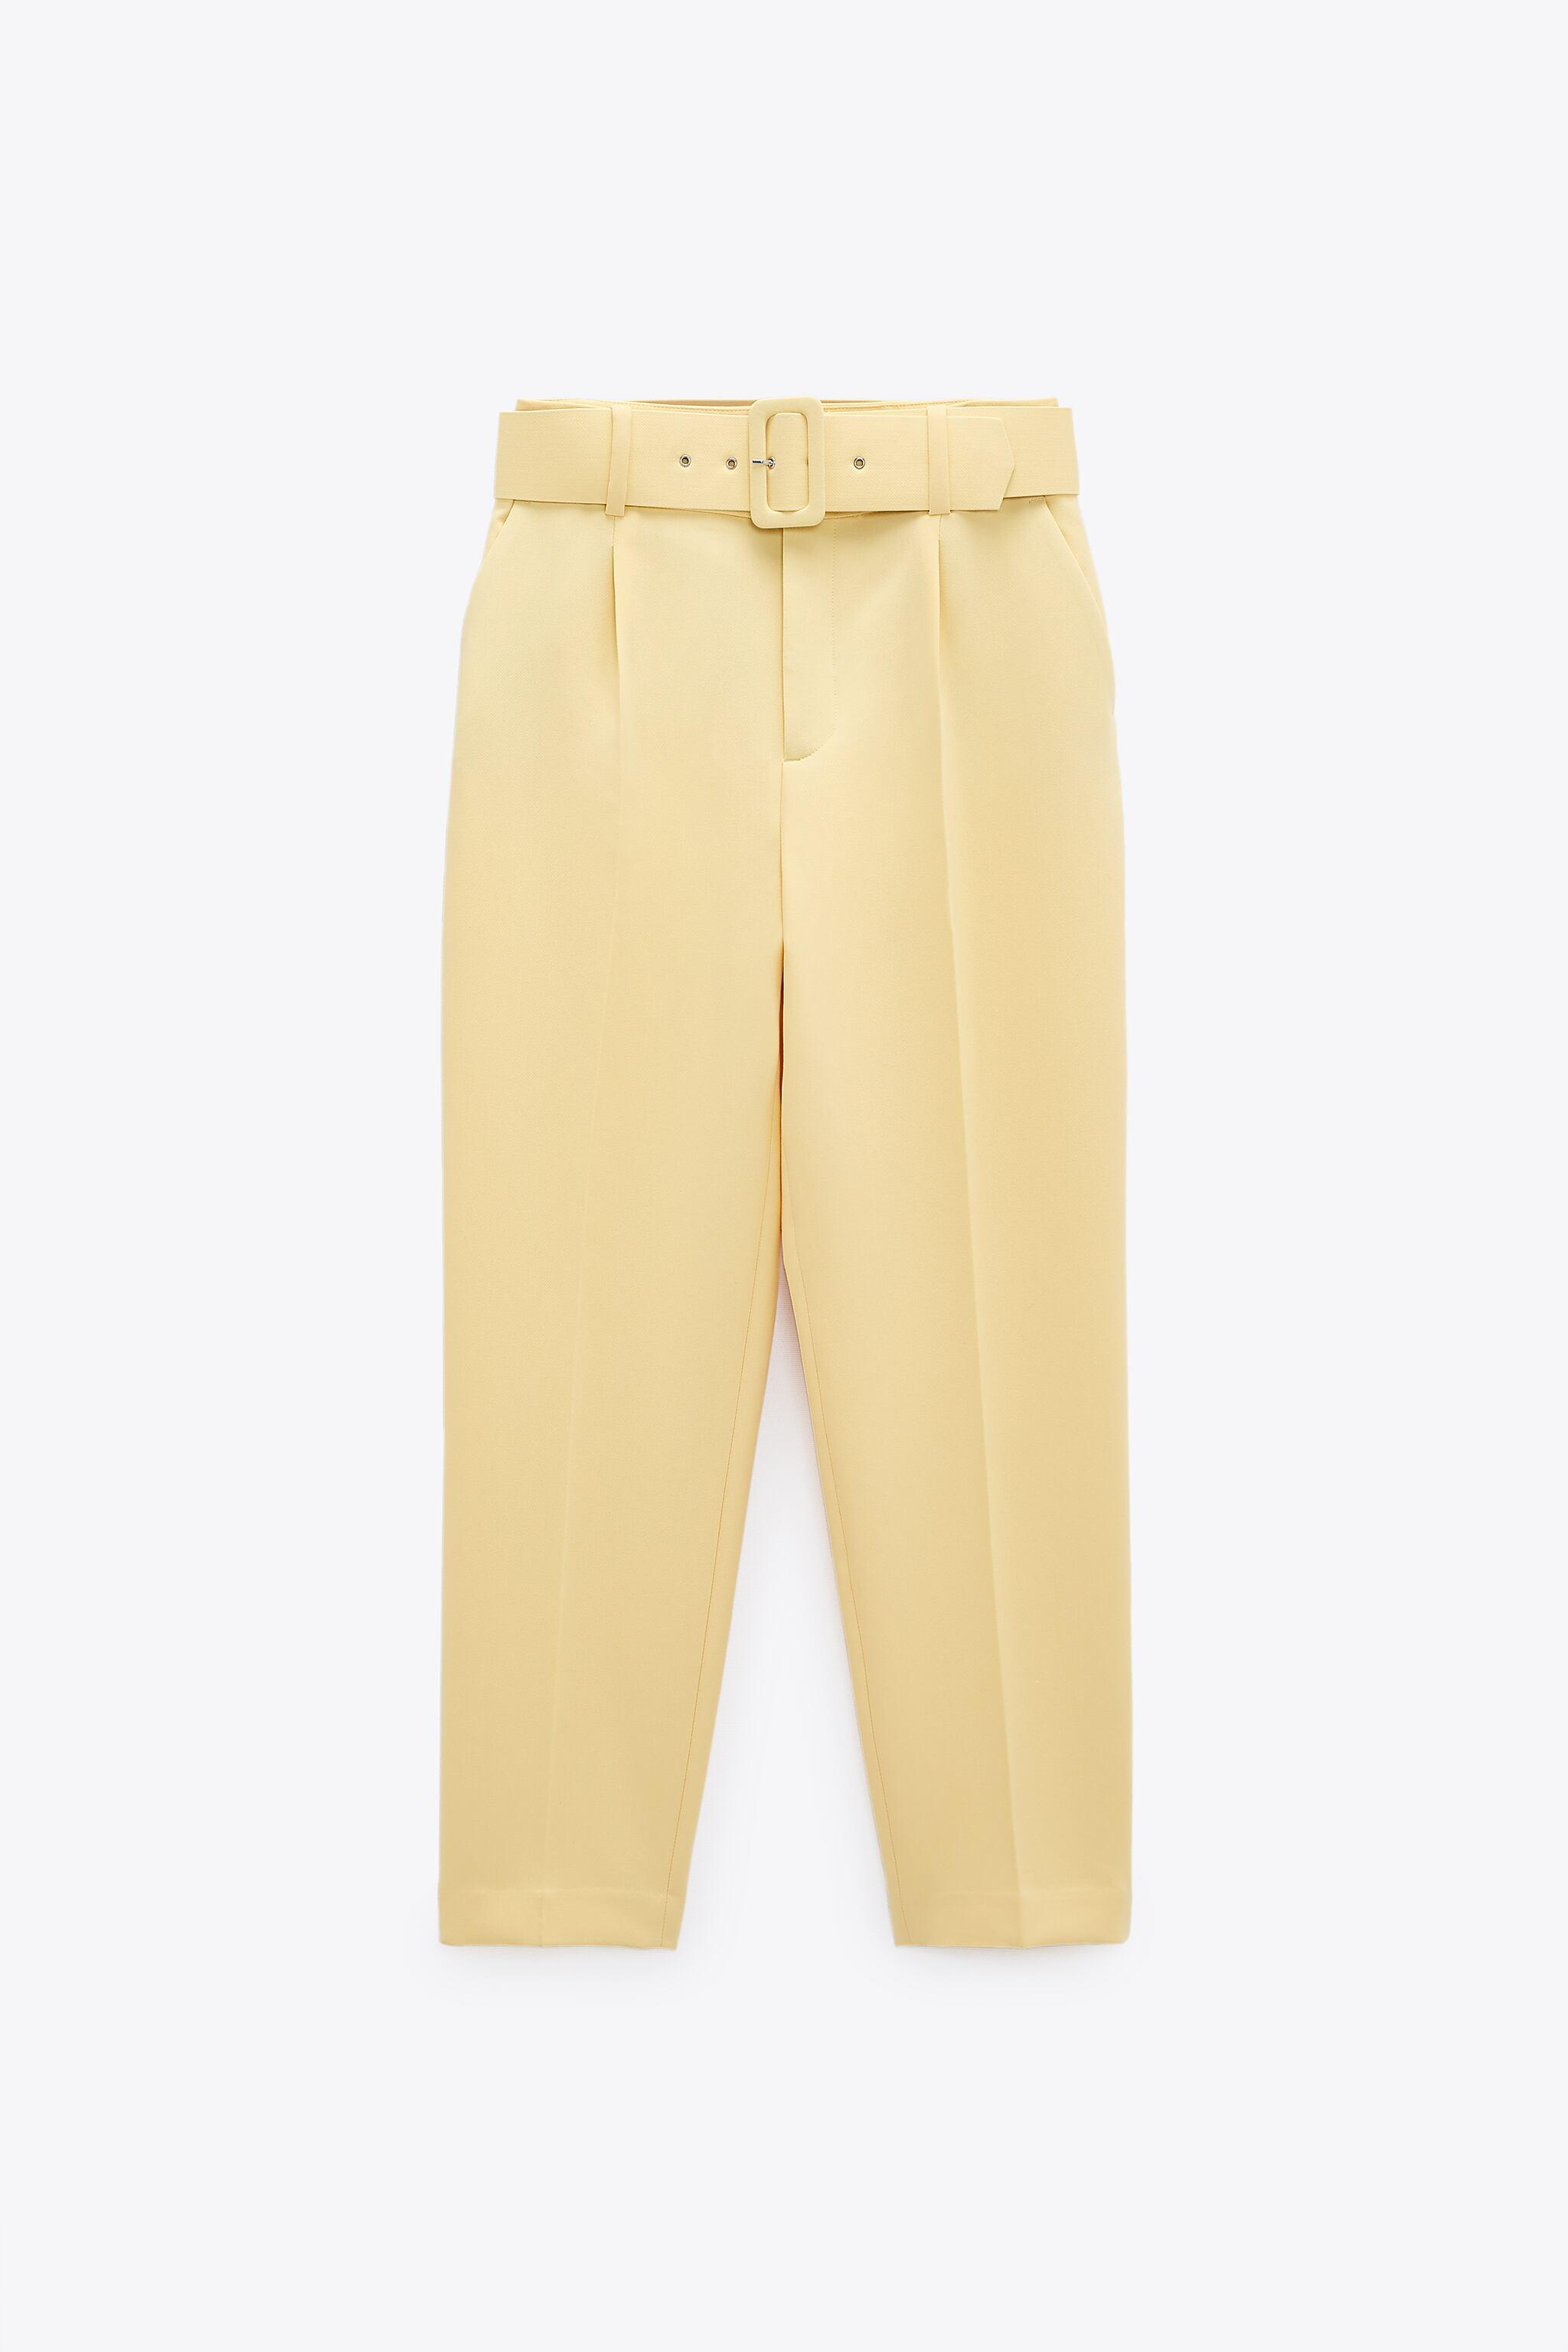 HIGH-WAISTED BELTED PANTS 6